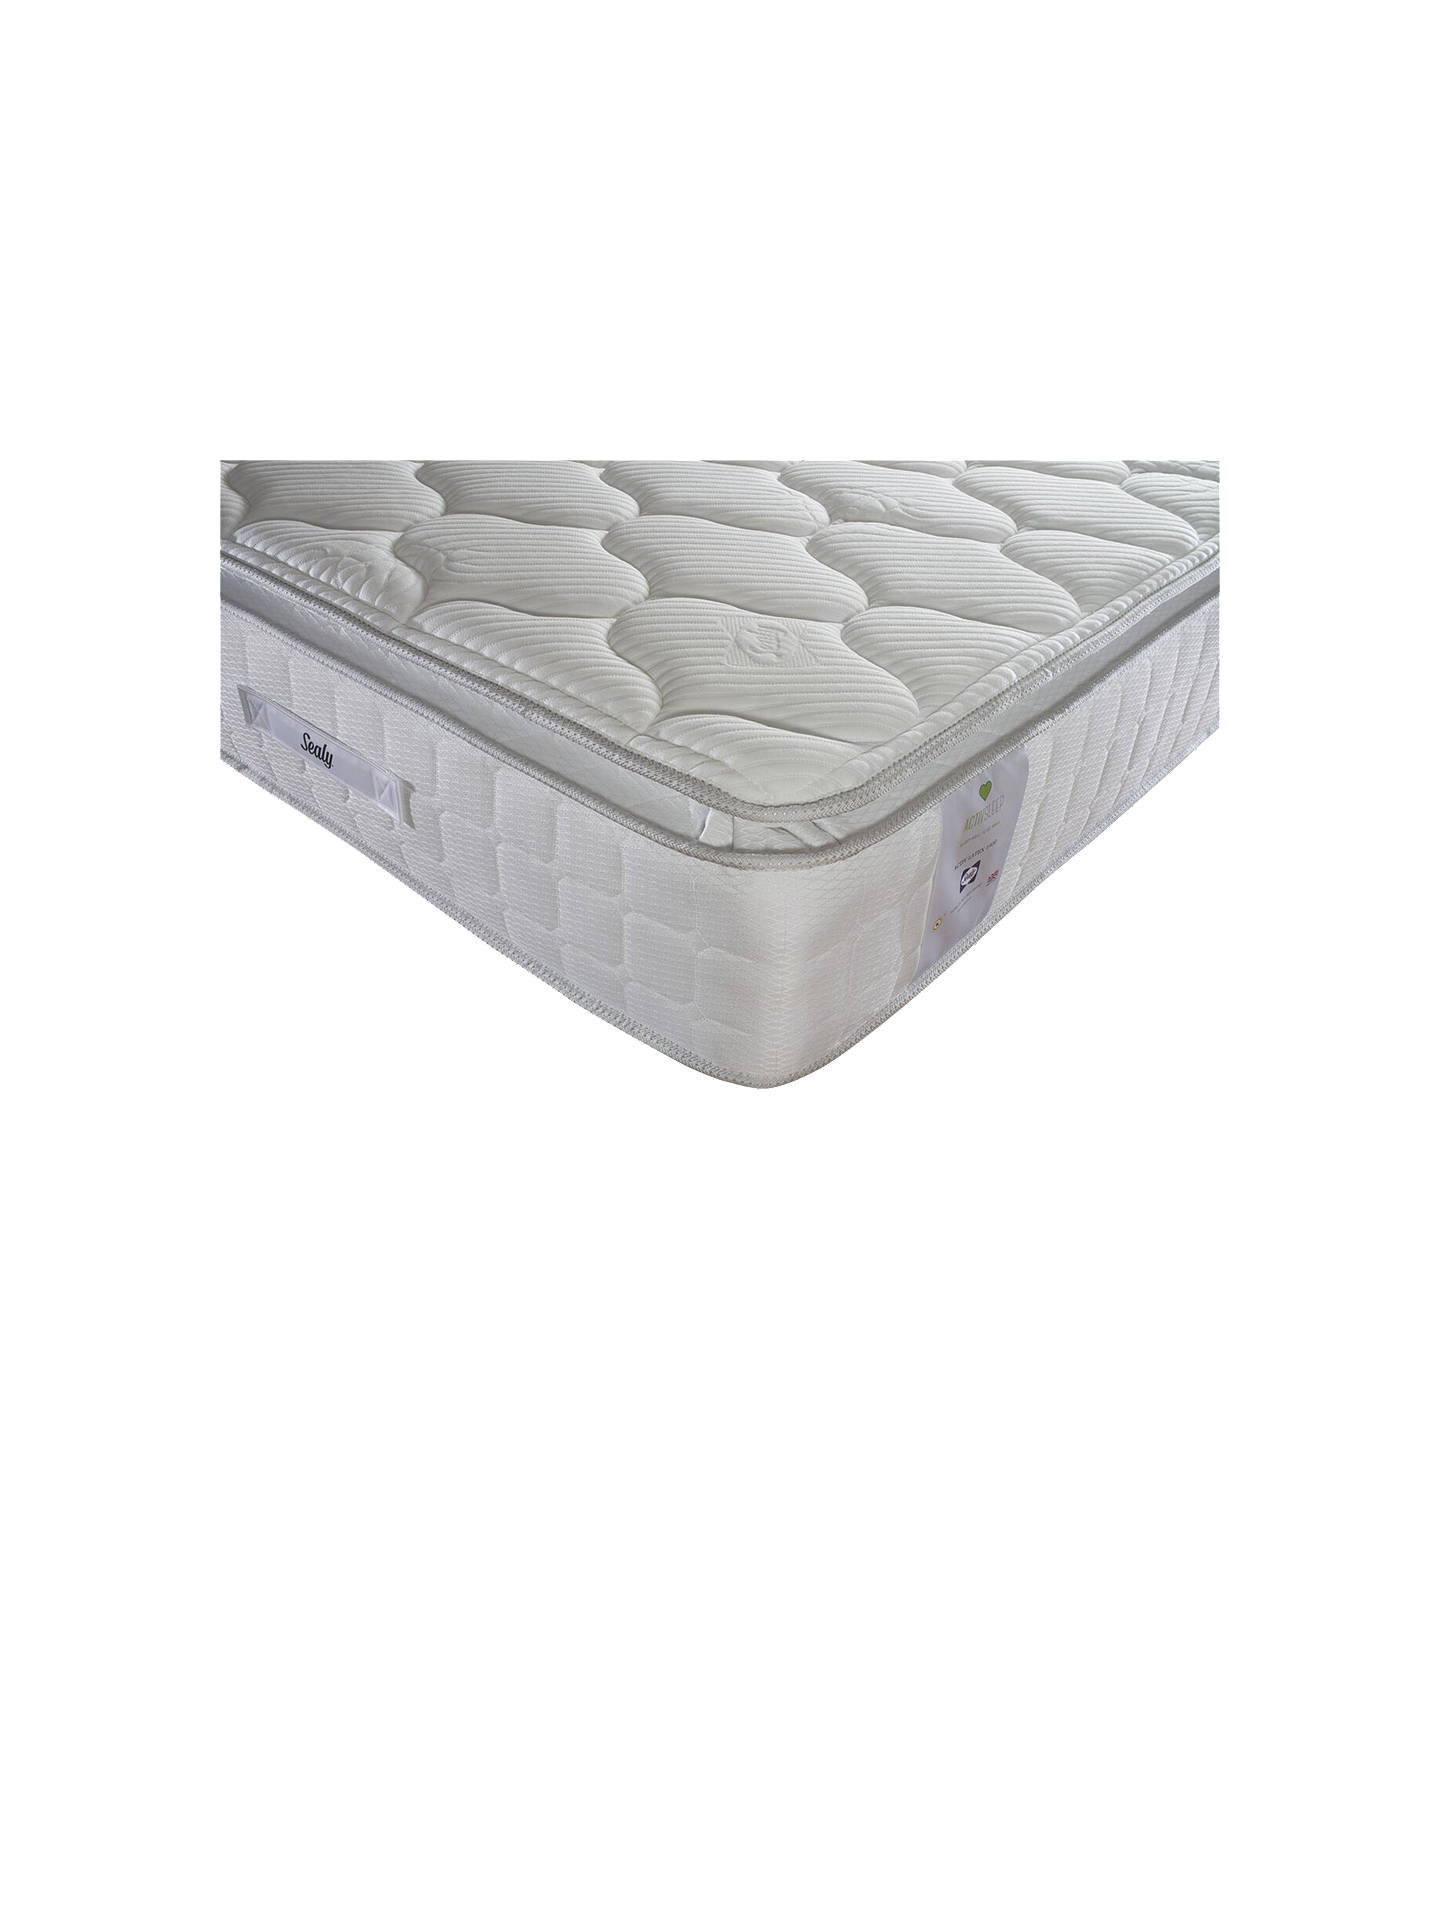 Buy Sealy Activsleep Latex 1400 Pocket Spring Mattress, Medium, Double Online at johnlewis.com